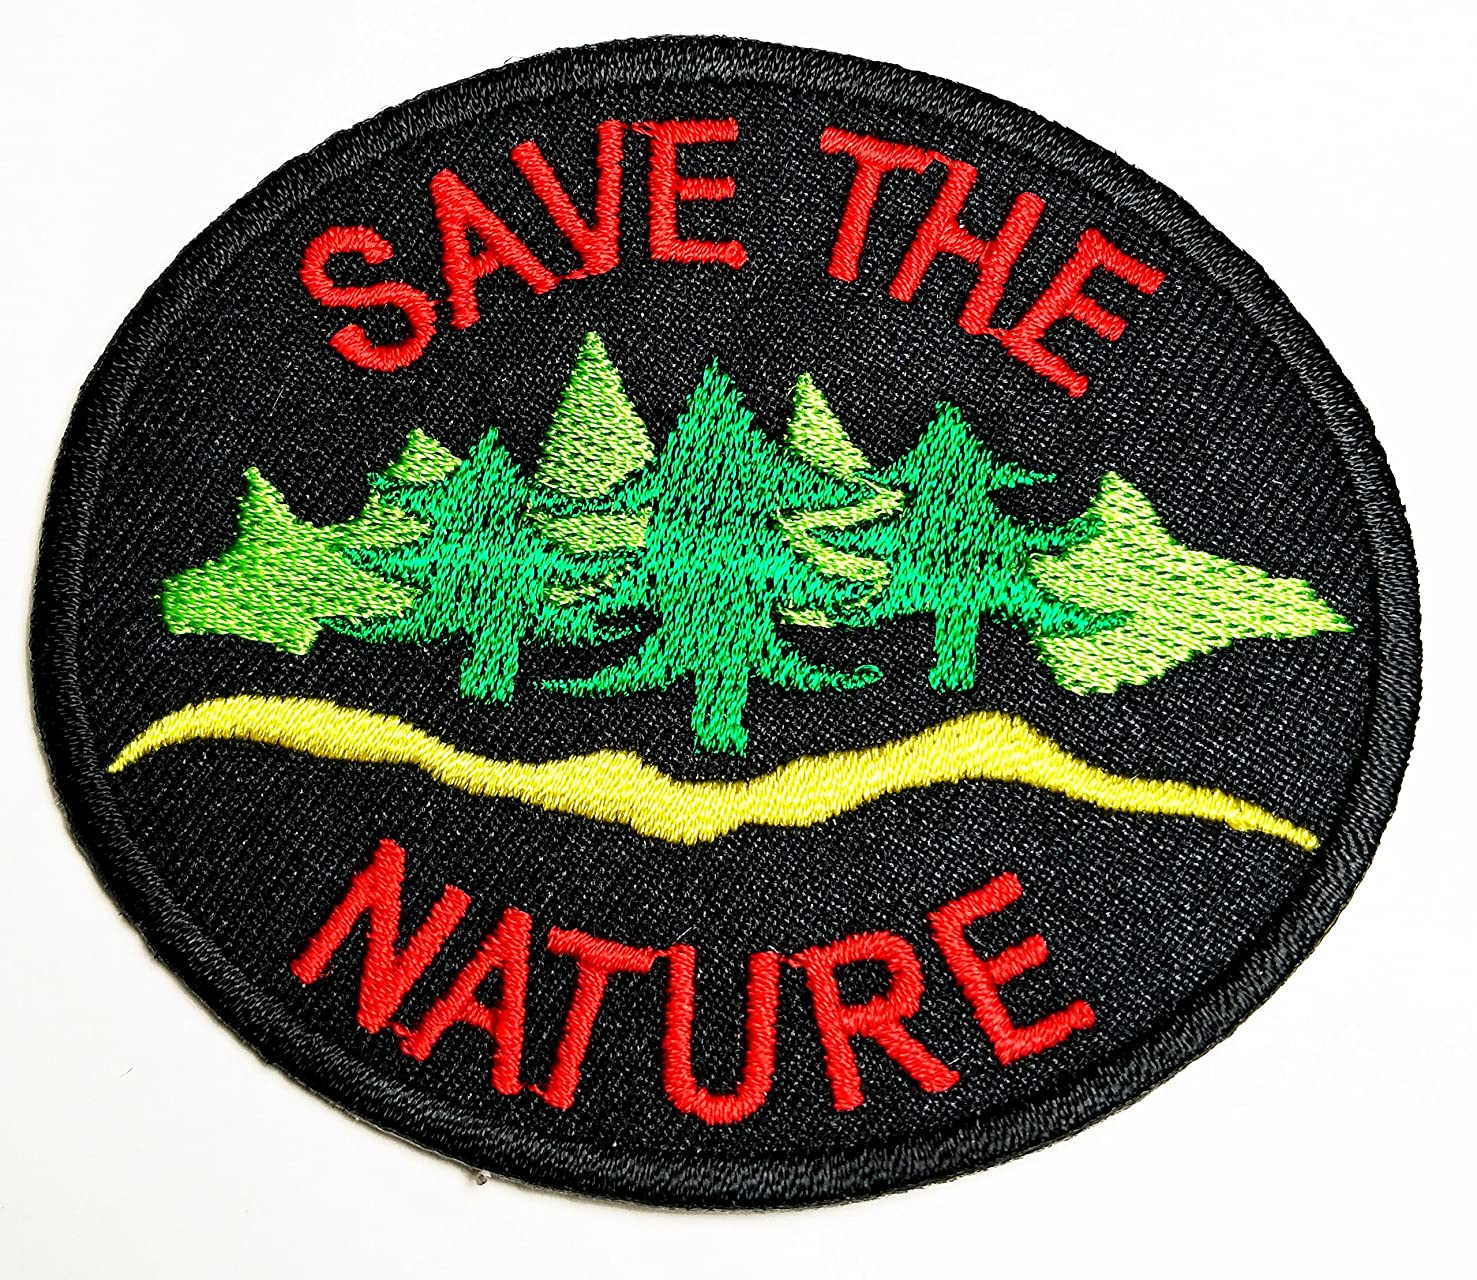 HHO Save The Nature Badge Emblem Environment Ecology Patch Embroidered DIY Patches, Cute Applique Sew Iron on Kids Craft Patch for Bags Jackets Jeans Clothes